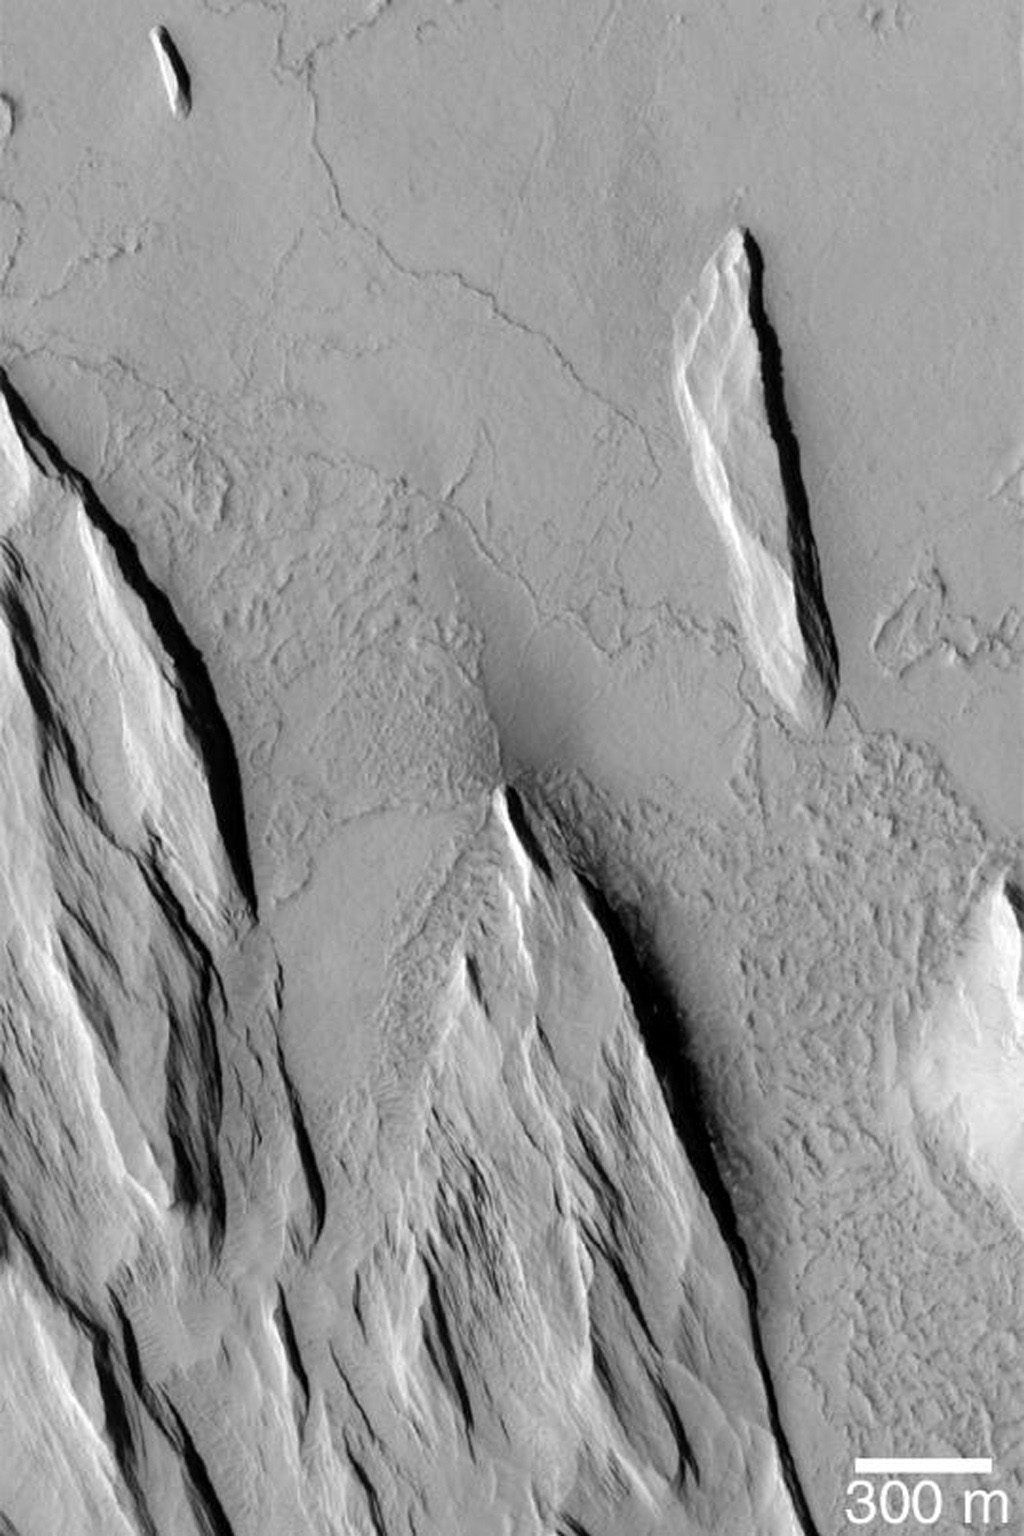 NASA's Mars Global Surveyor shows the results of wind erosion of a thick deposit of fine-grained, cemented material on Mars. The ridges oriented roughly from northwest to southeast are called yardangs.